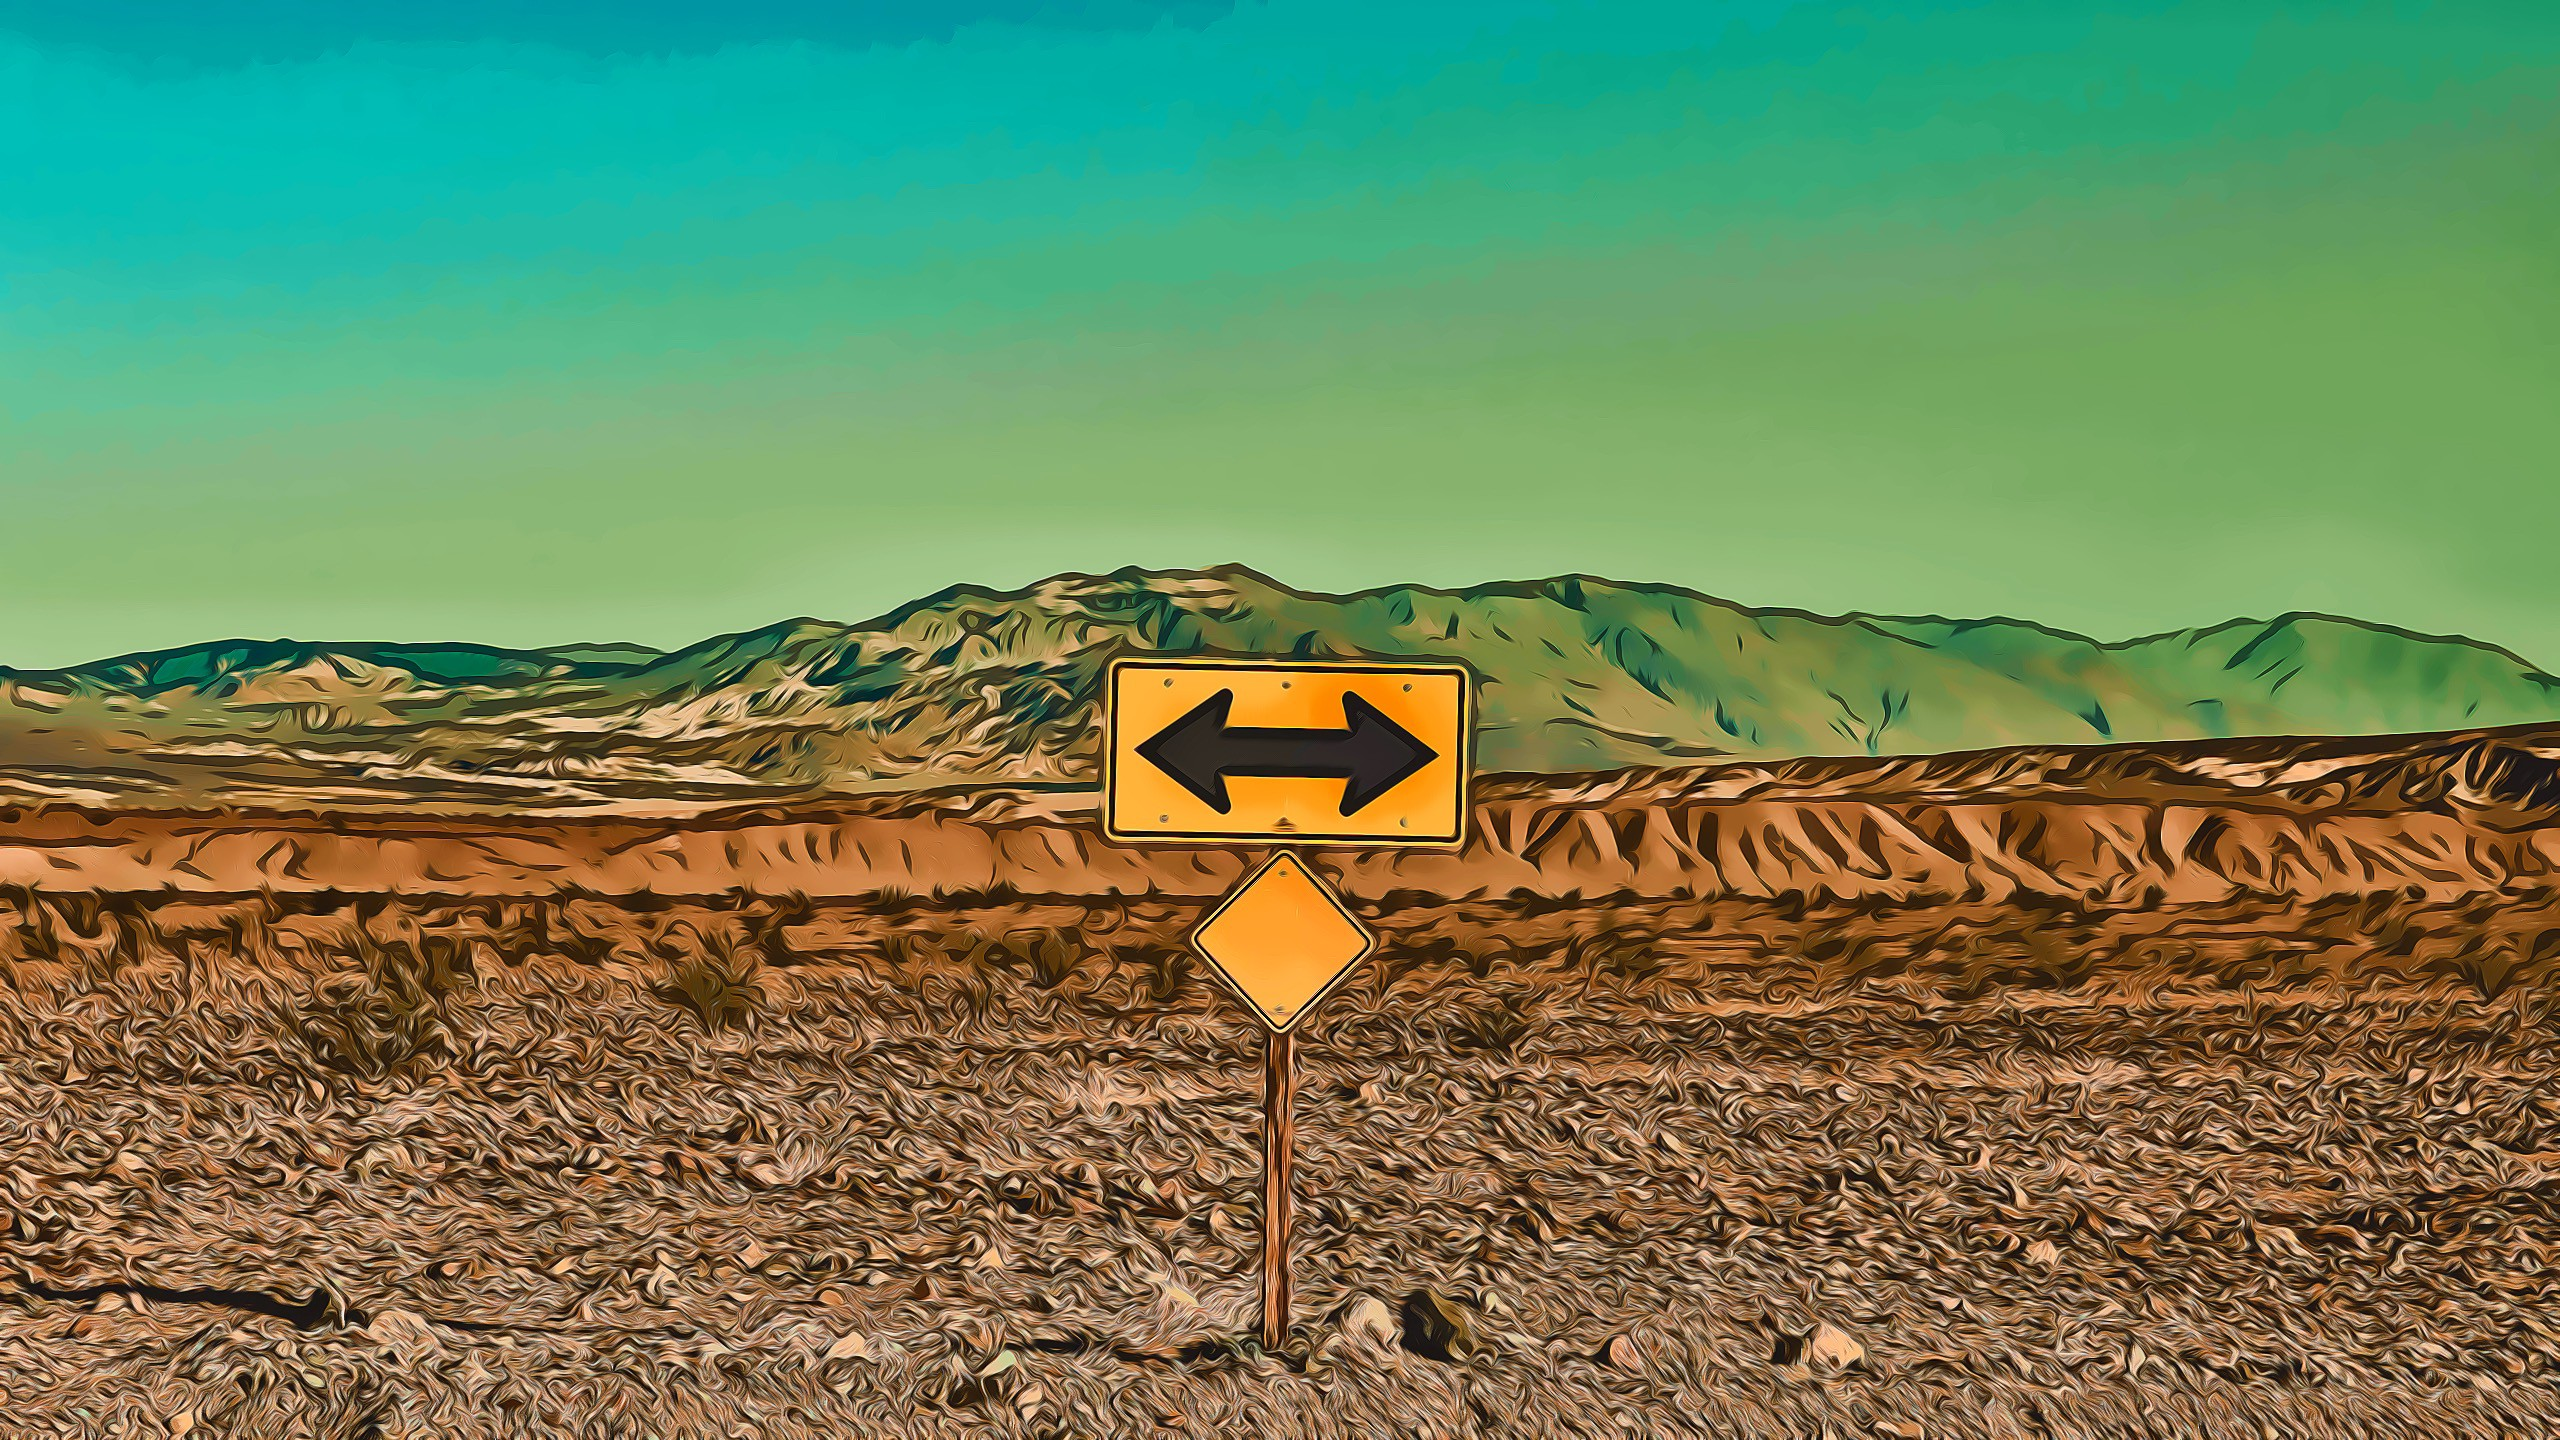 Sign in the desert